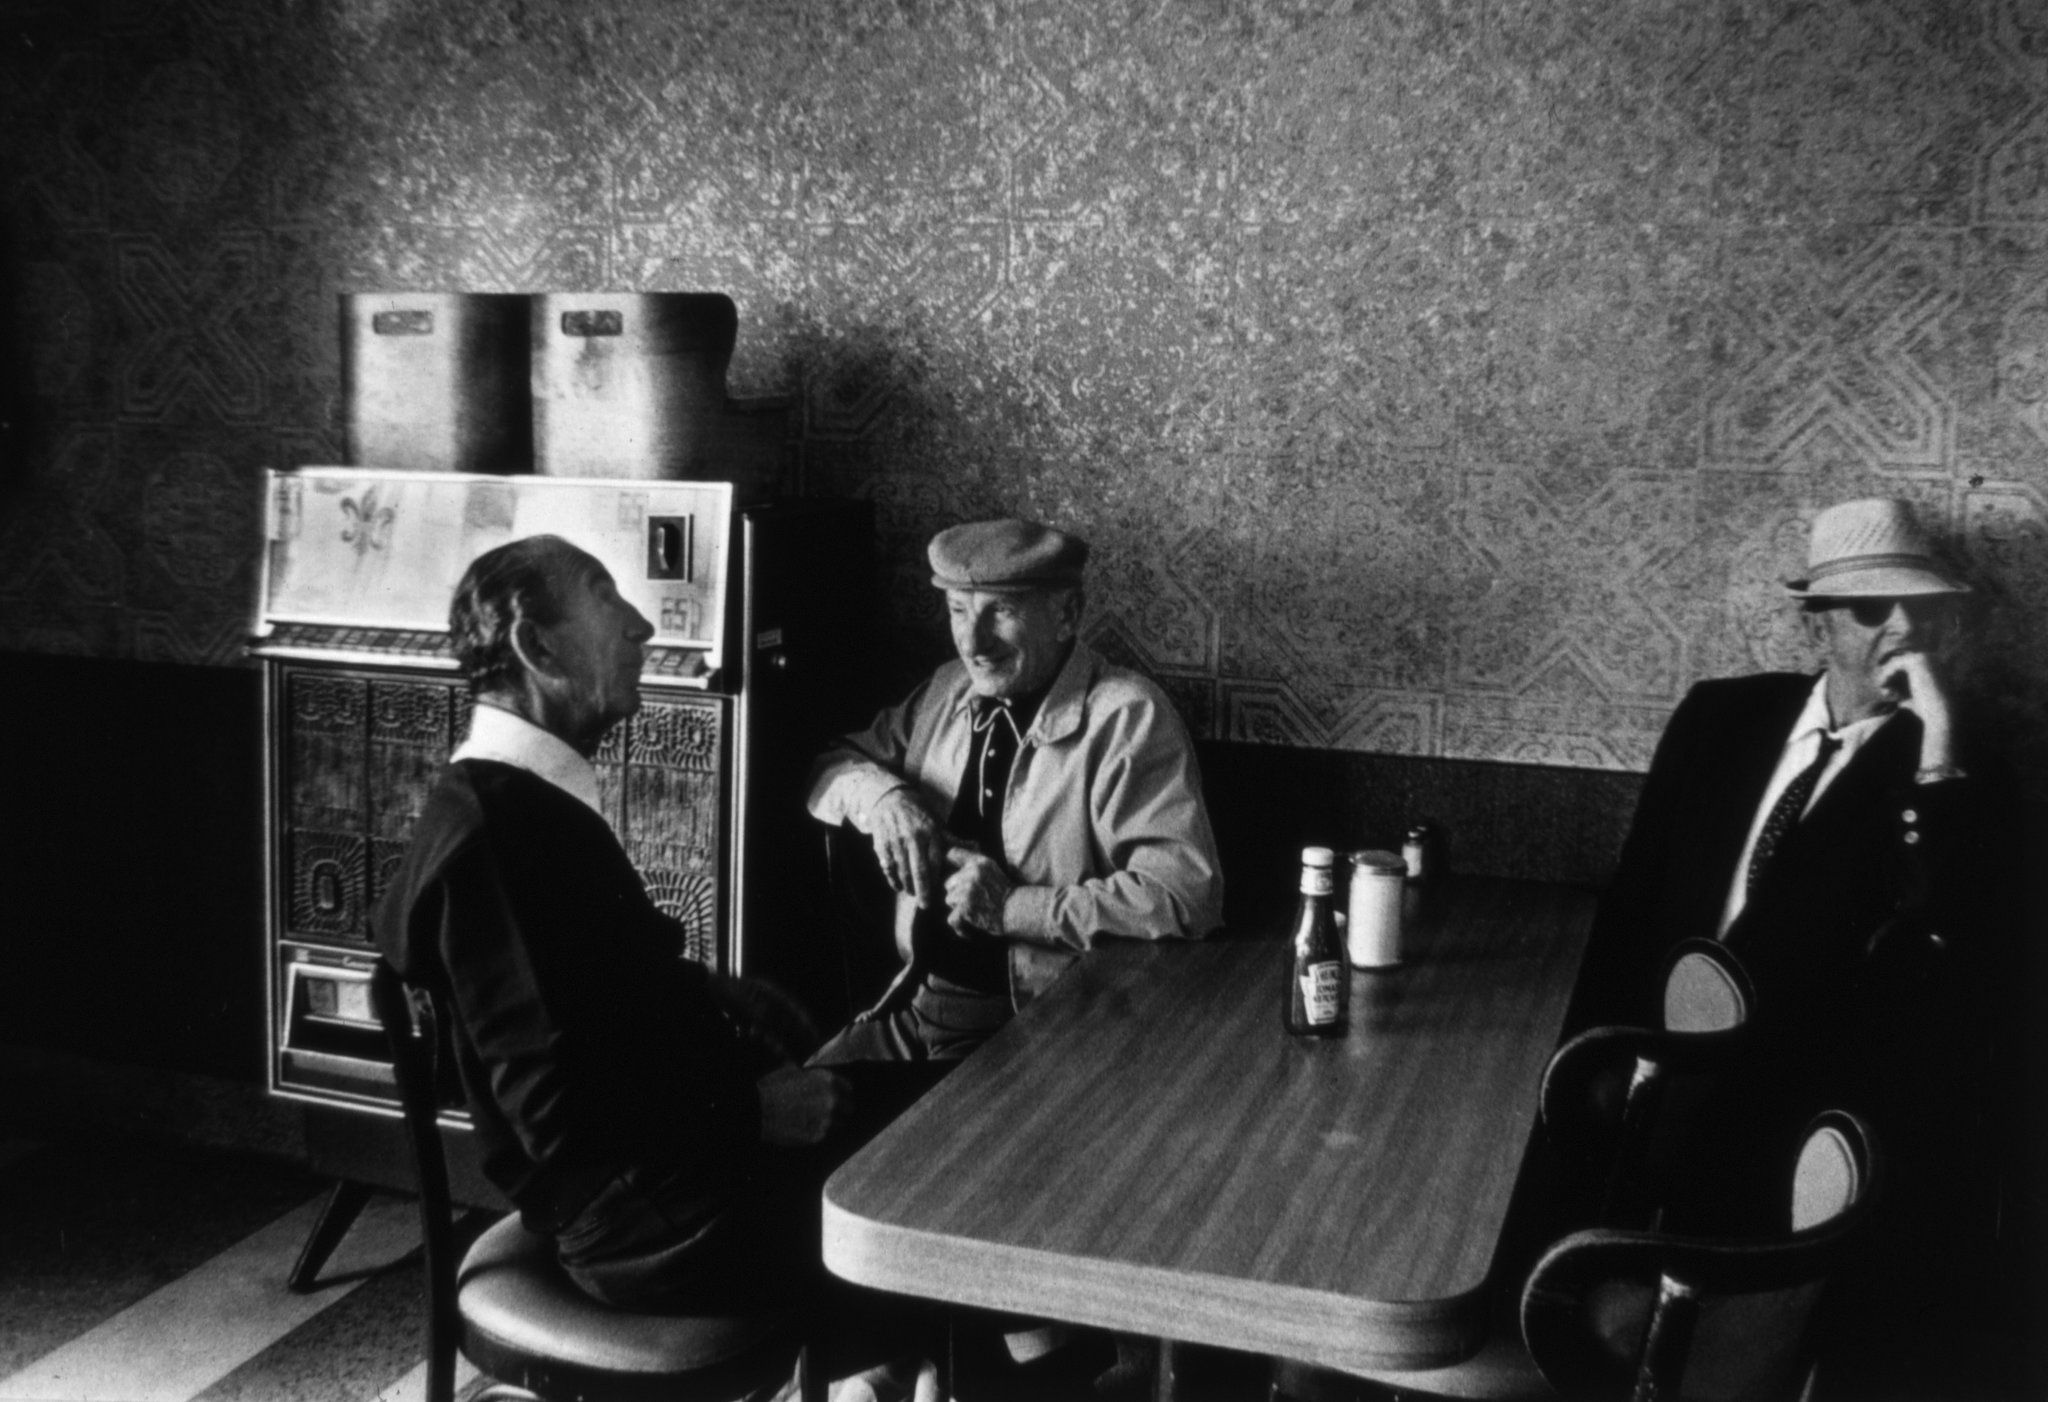 Marcia Bricker Halperin's photos of New York's long-gone cafeterias show their graceful architecture, moody lighting and the characters who frequented them.